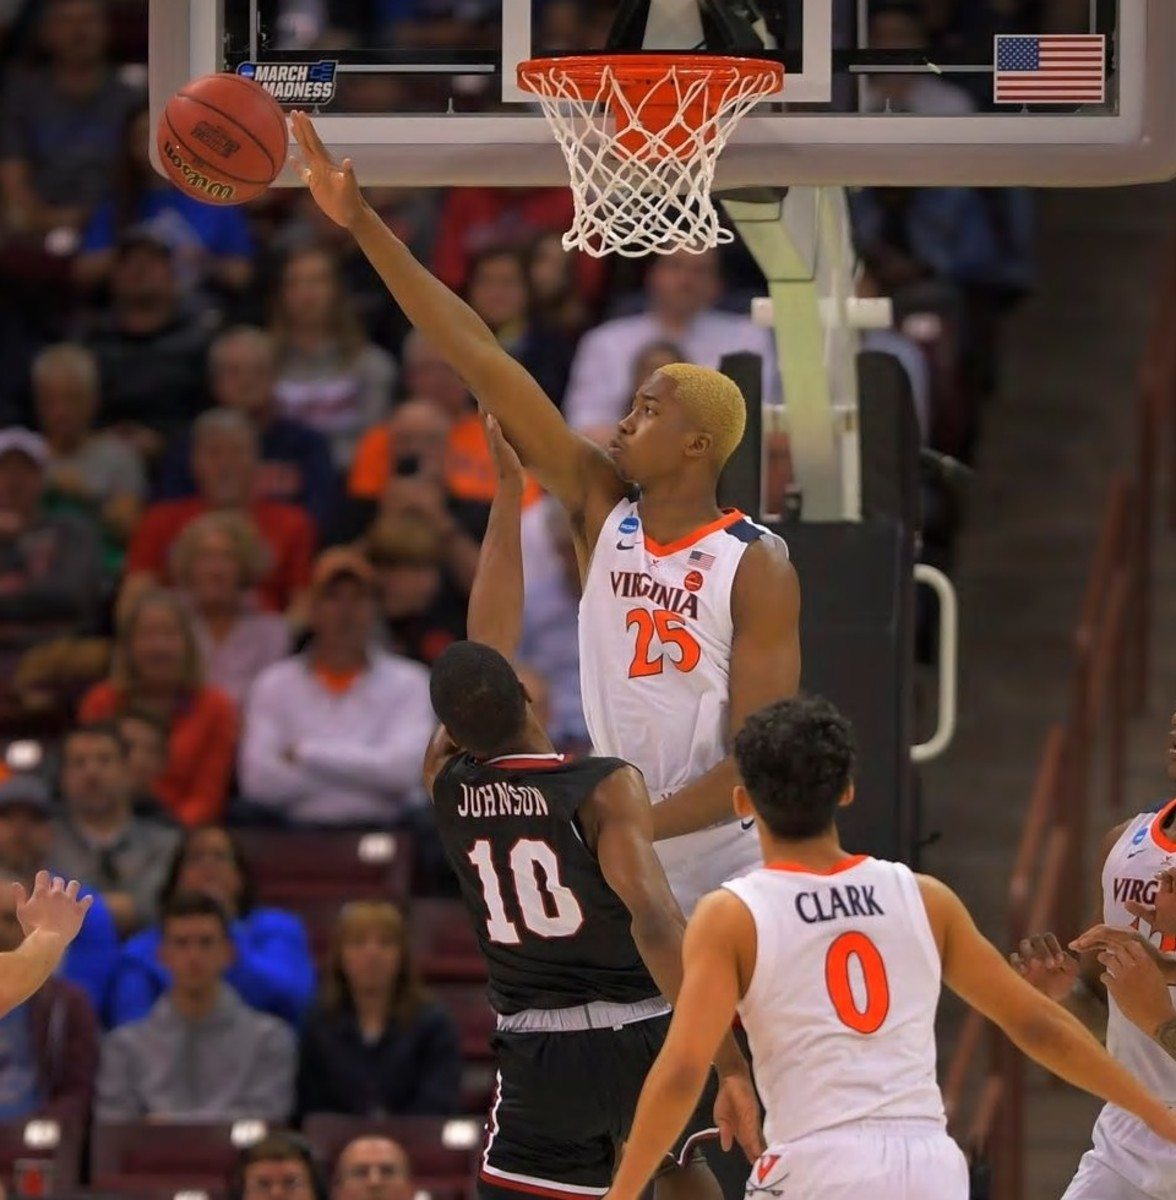 Mamadi Diakite will be a contender for defensive player of the year.